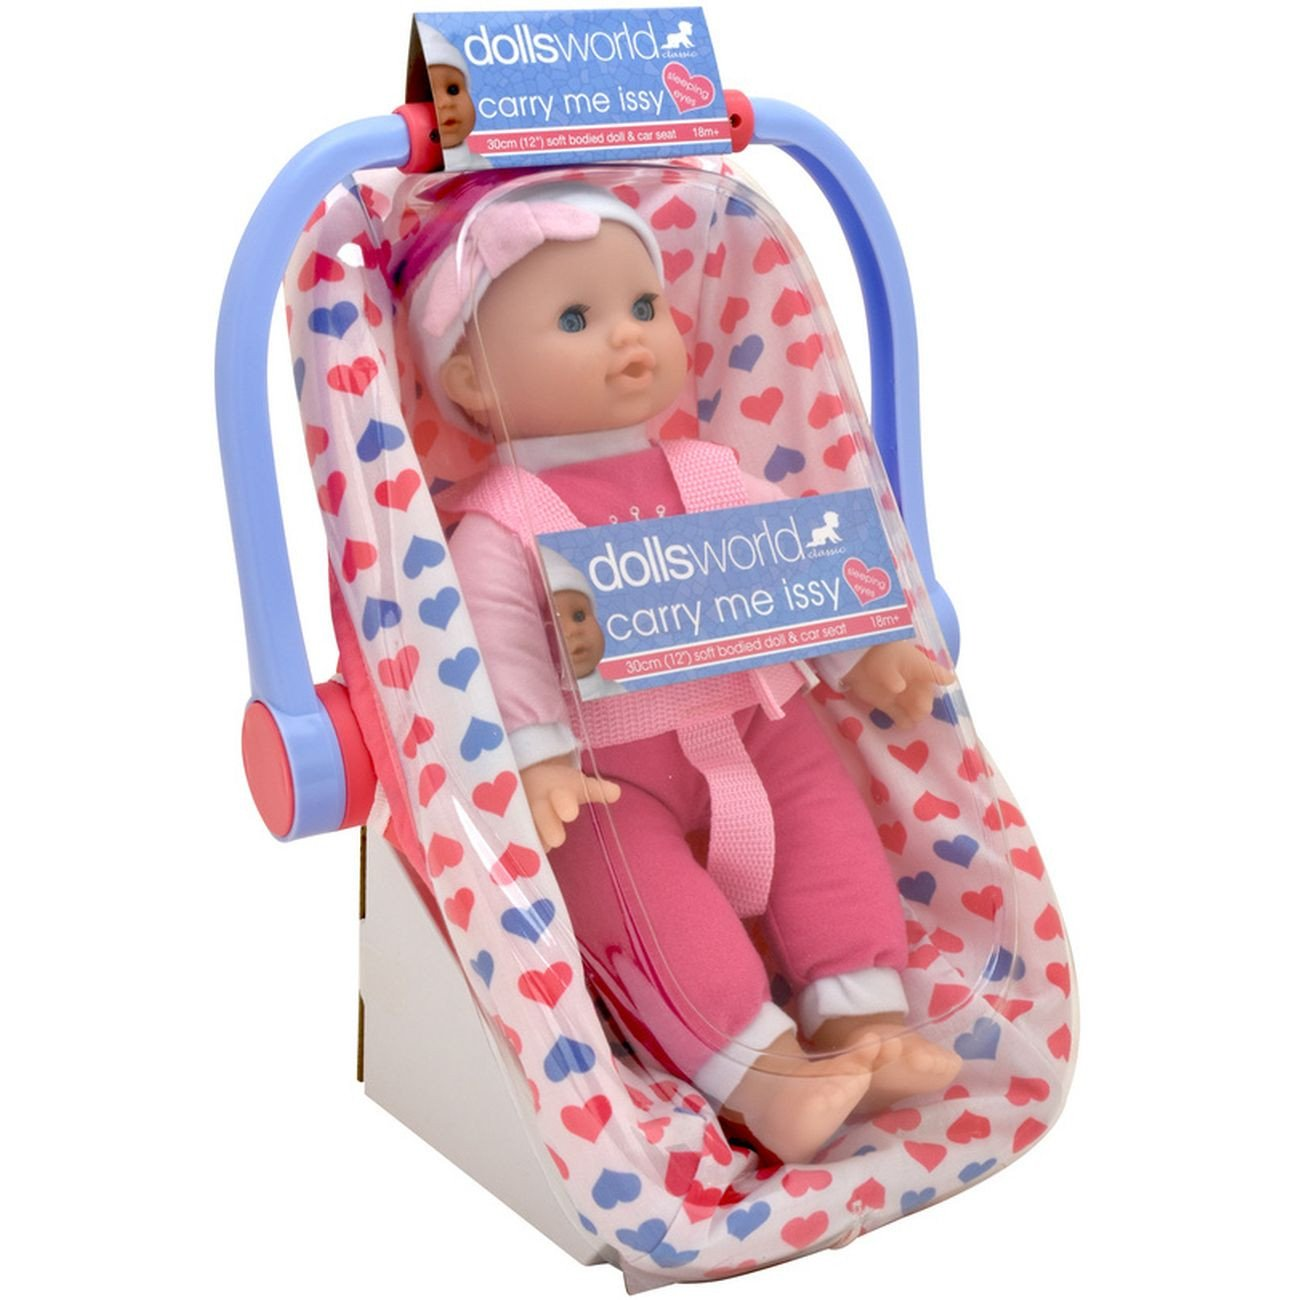 DOLLSWORLD CAR SEAT CARRY ME ISSY 30CM